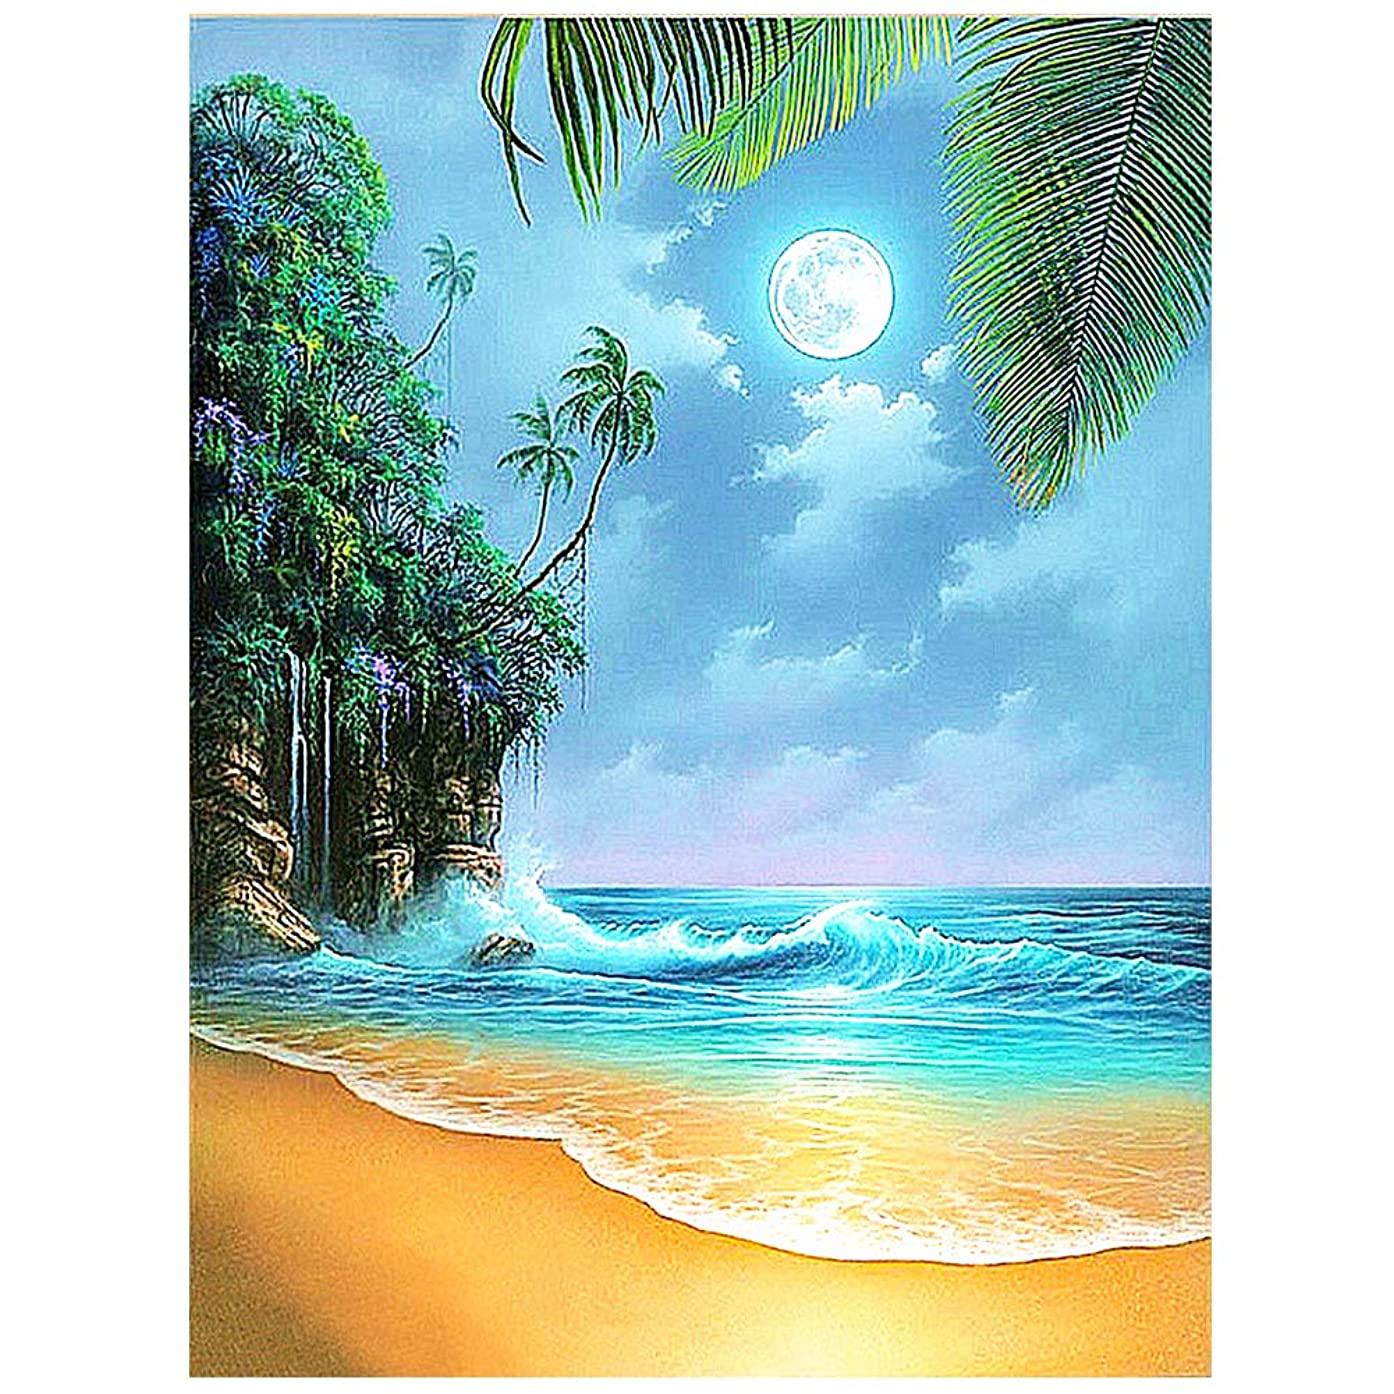 HuaCan DIY 5D Full Square Drill Diamond Painting by Number Cross Stitch Mosaic Kits Beach Moon Embroidery Handmade Wall Art Cross Stitch Arts Craft for Kids Adults 30x40cm/11.8x15.7in